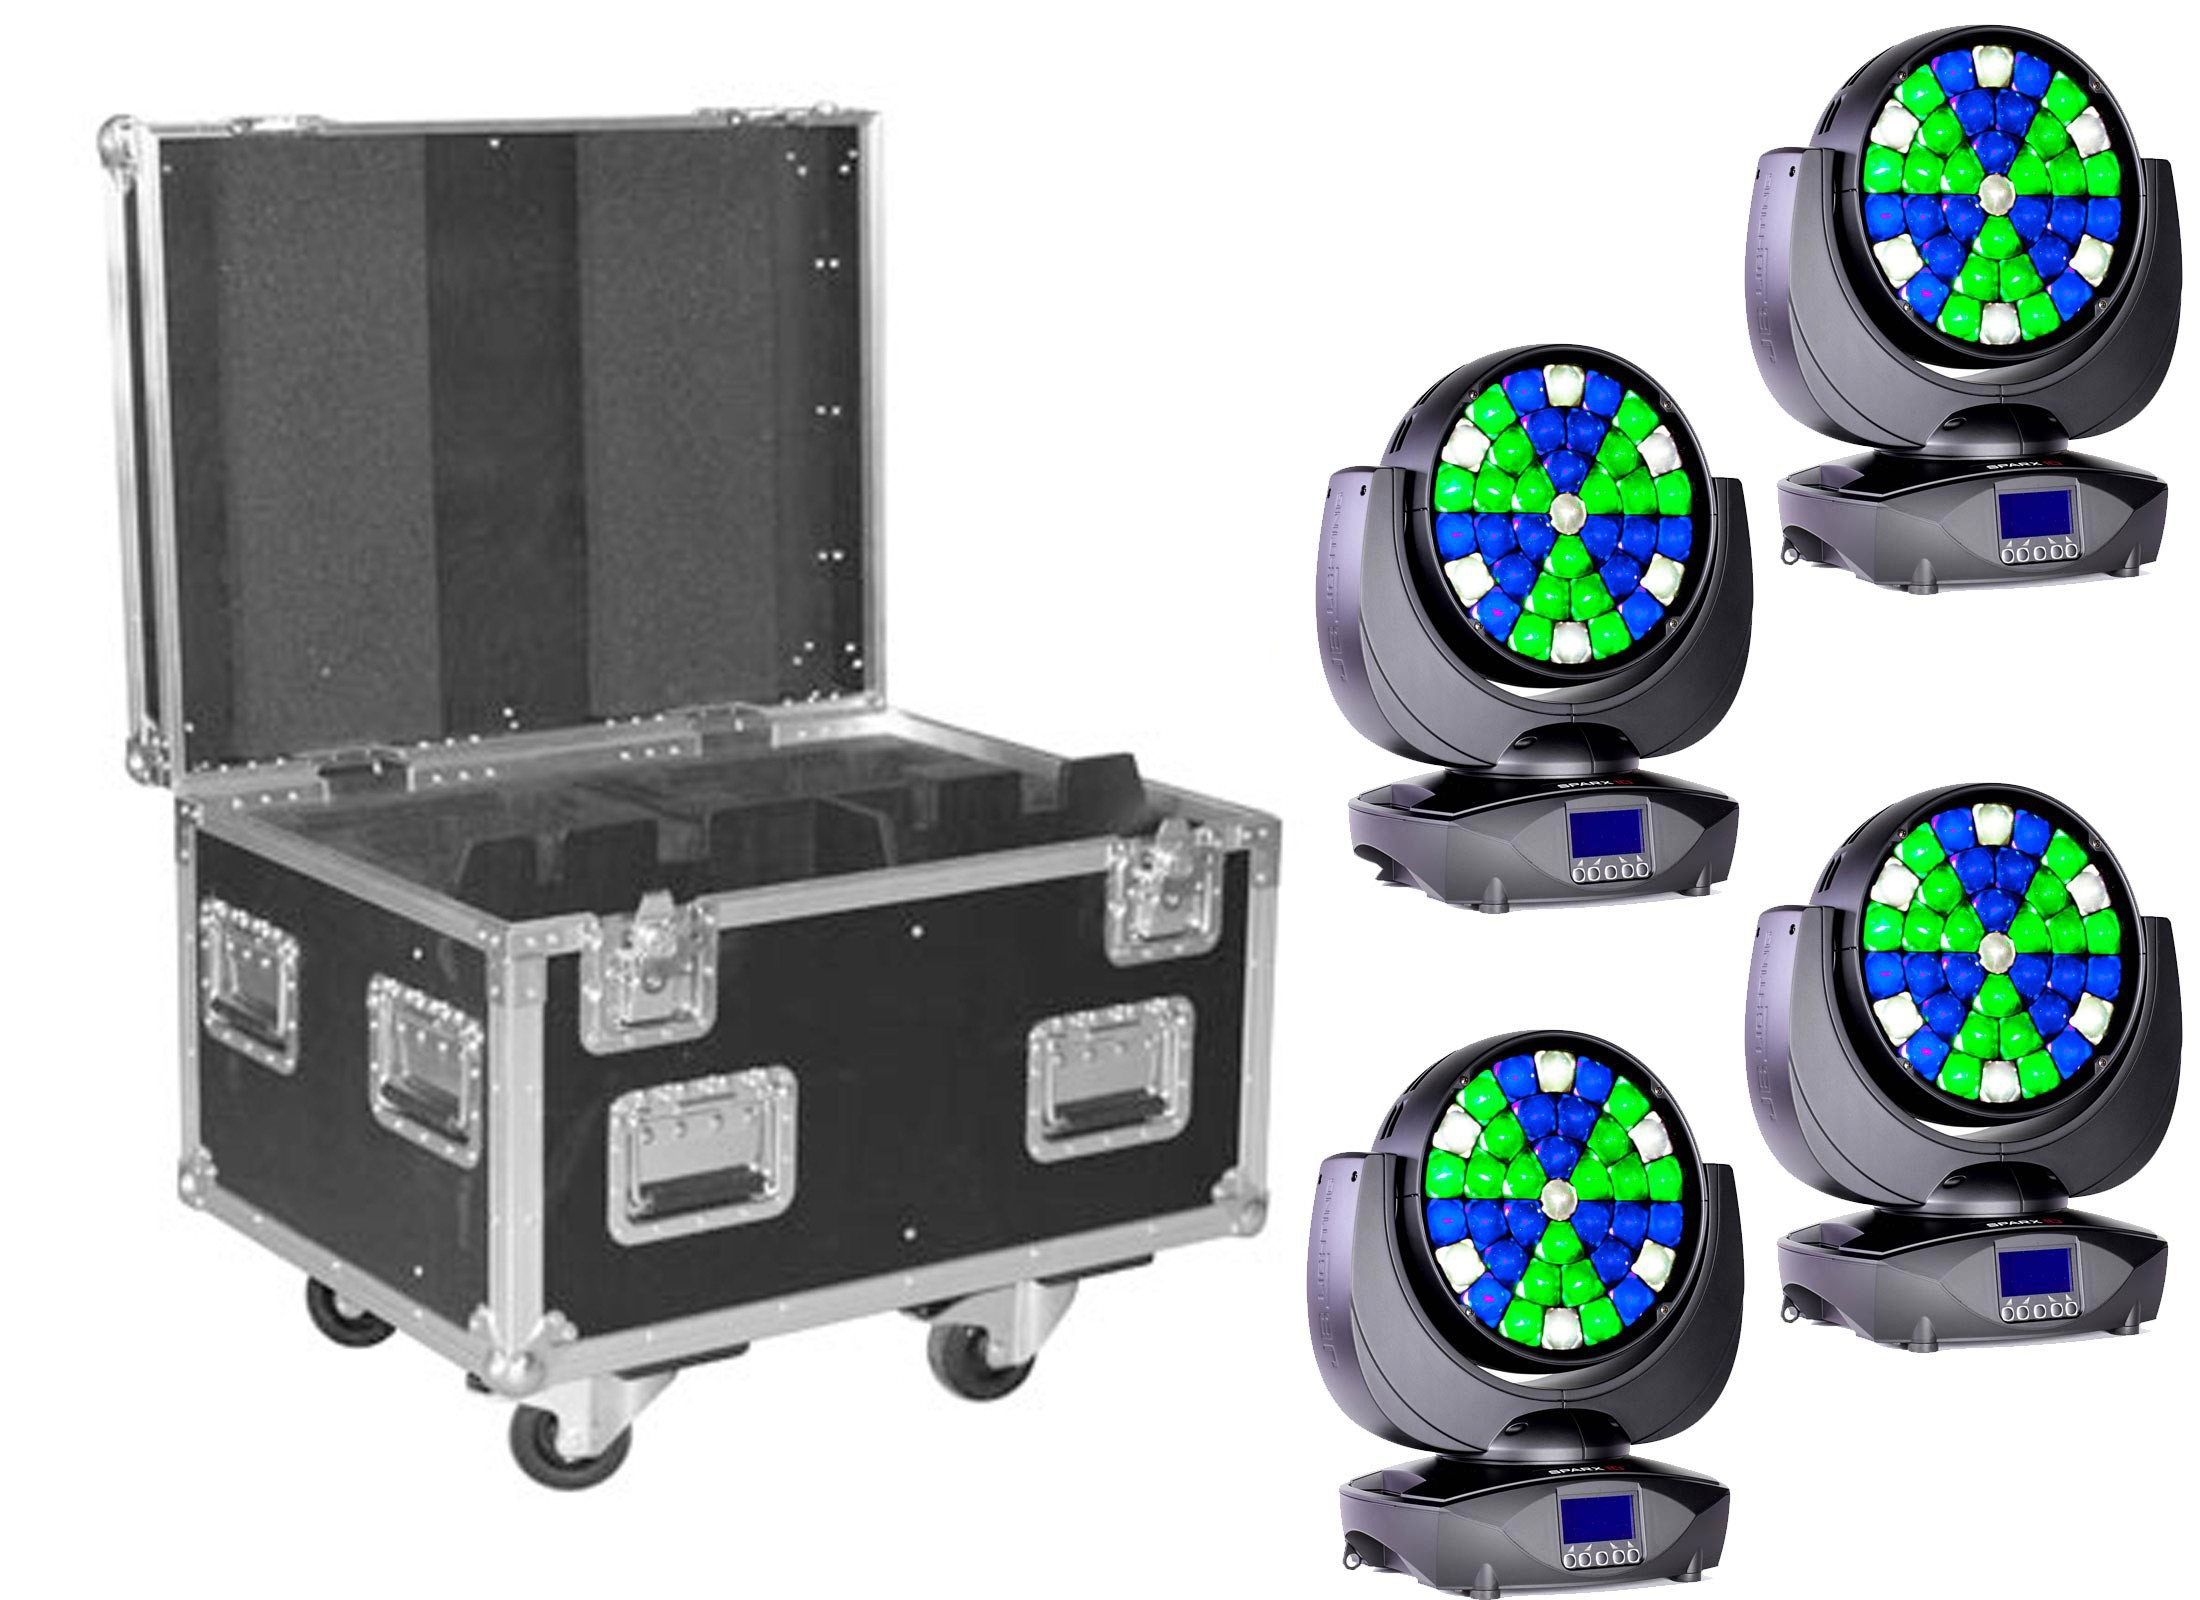 Jb Lighting Sparx 18 Jb Lighting Sparx 10 Led Moving Head Wash 4 Set At Huss Light Sound